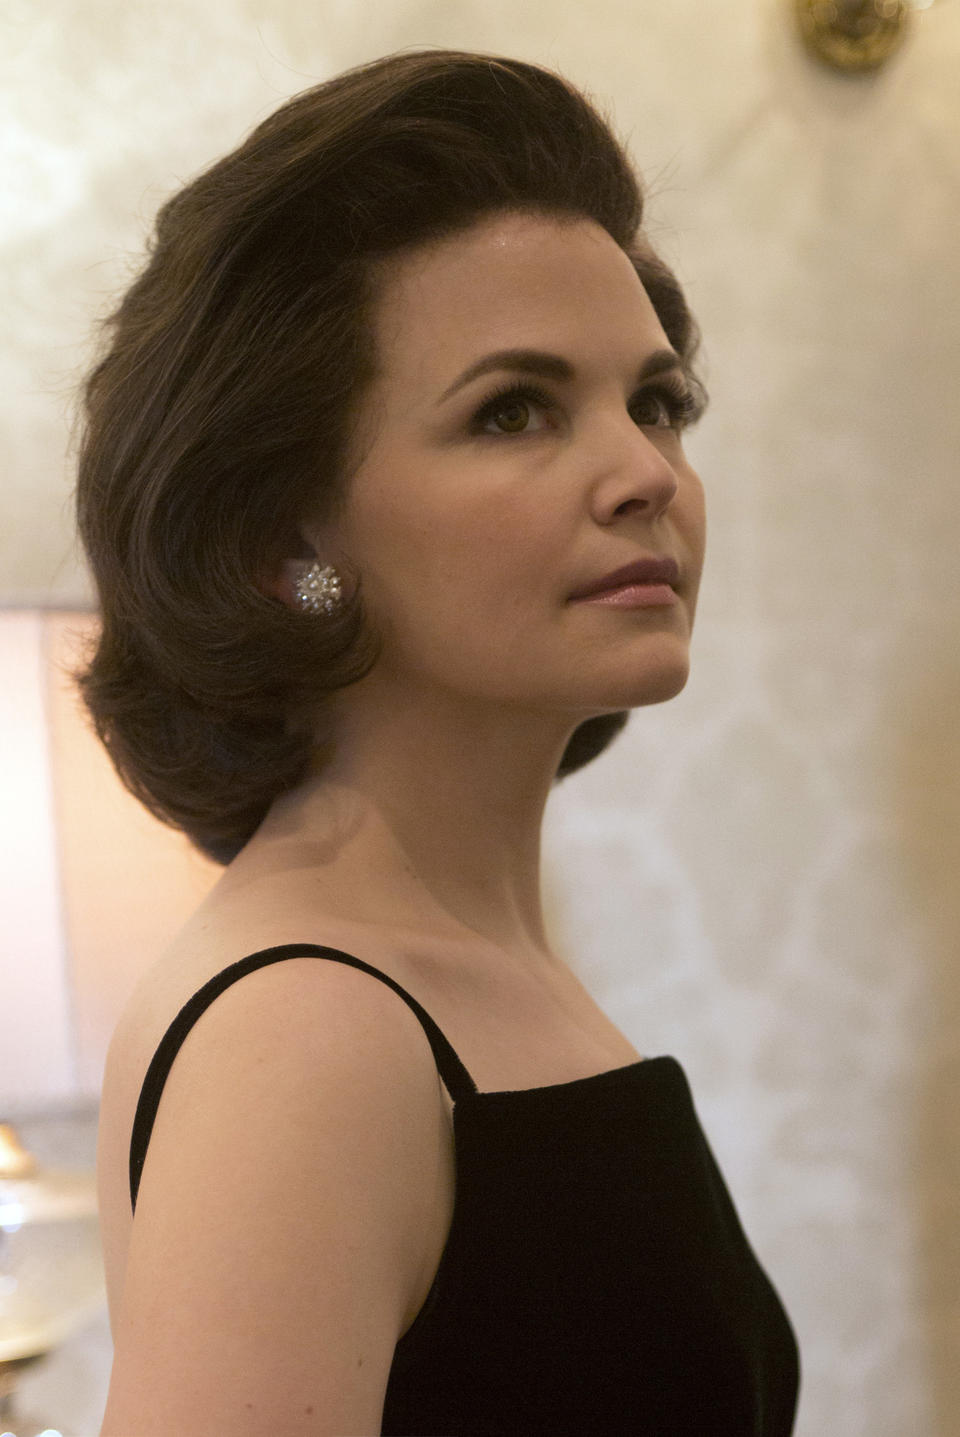 """Earlier this week we got our first look of Rob Lowe as President John F. Kennedy on the set of National Geographic Channel's """"Killing Kennedy."""" Now we get to see Ginnifer Goodwin as first lady Jacqueline Kennedy. The two-hour movie, which is filming in Richmond, Va., will air in November. Michelle Trachtenberg costars as Marina Oswald and Will Rothhaar plays Lee Harvey Oswald."""